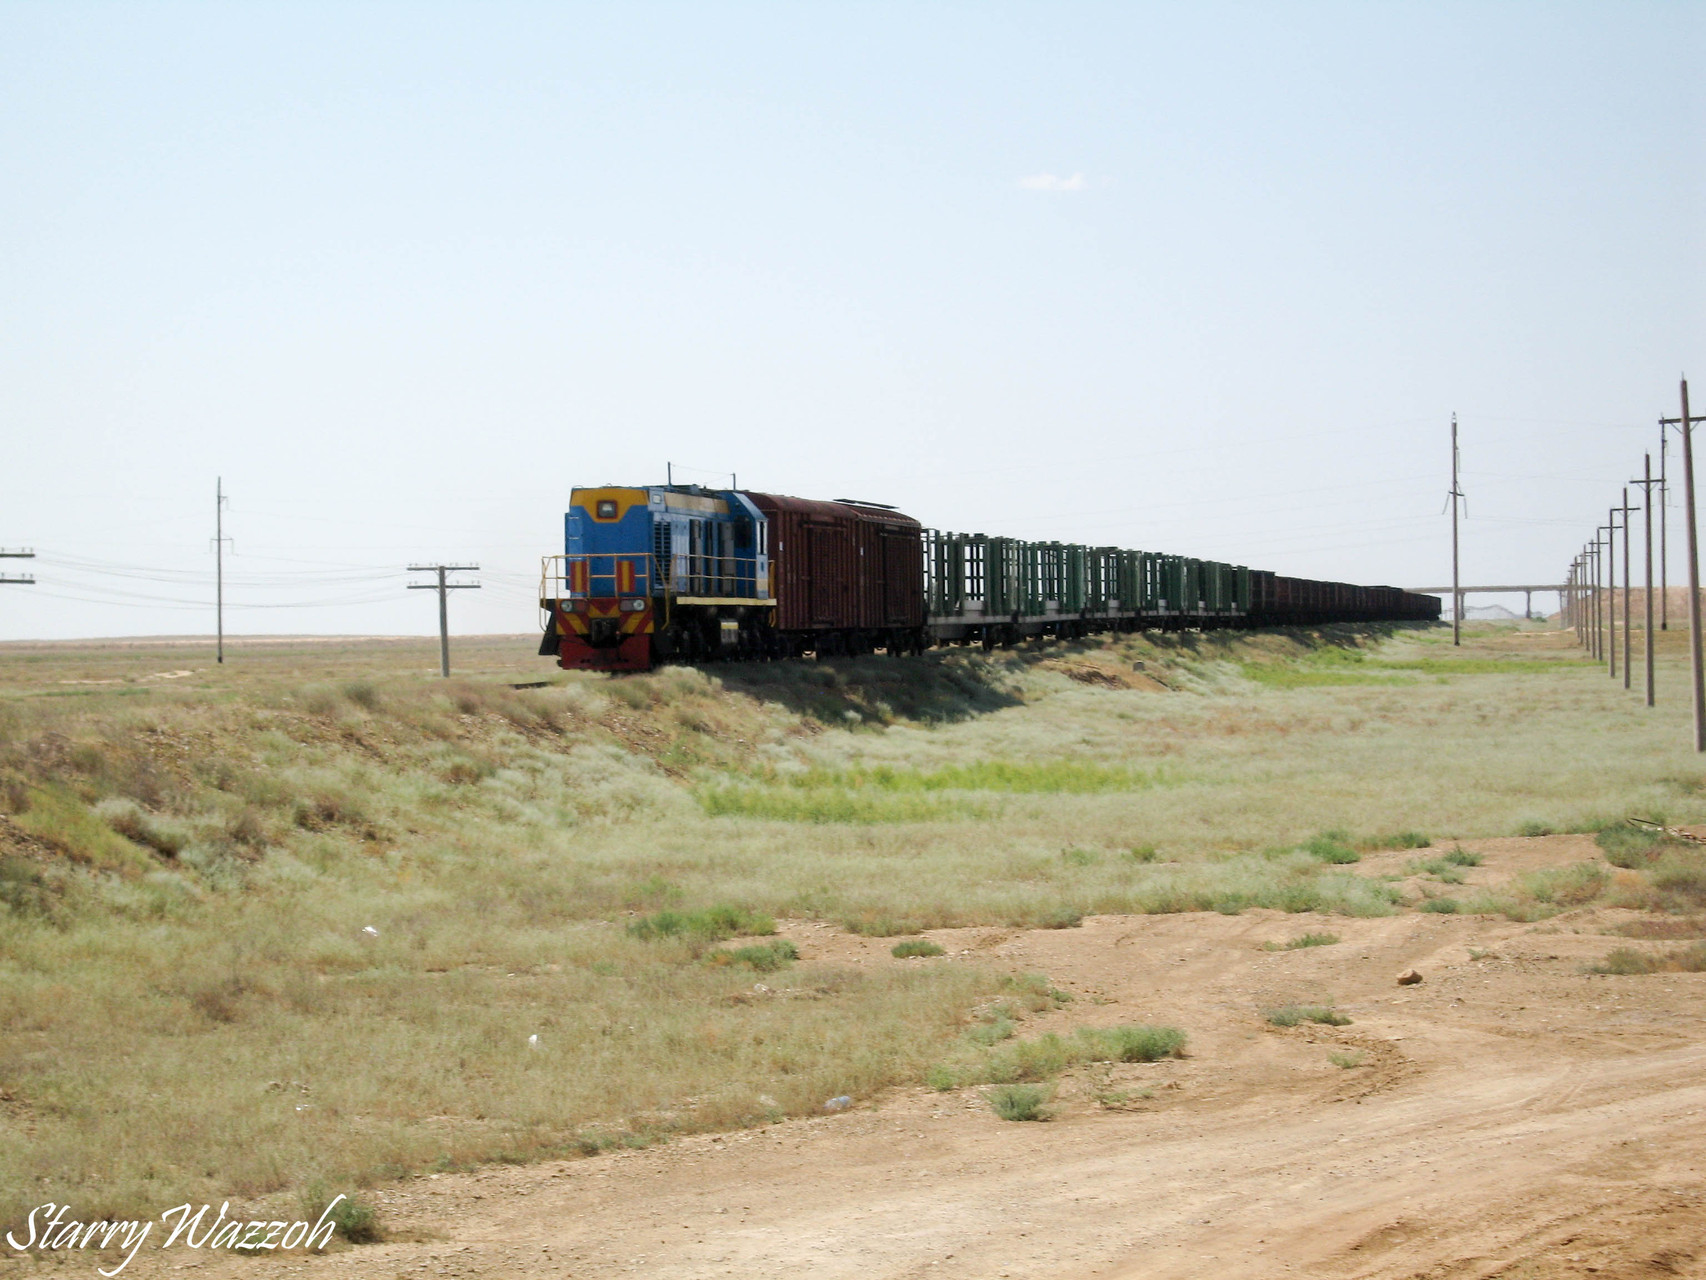 Rolling on down the line, near Makat, Kazakhstan 2006